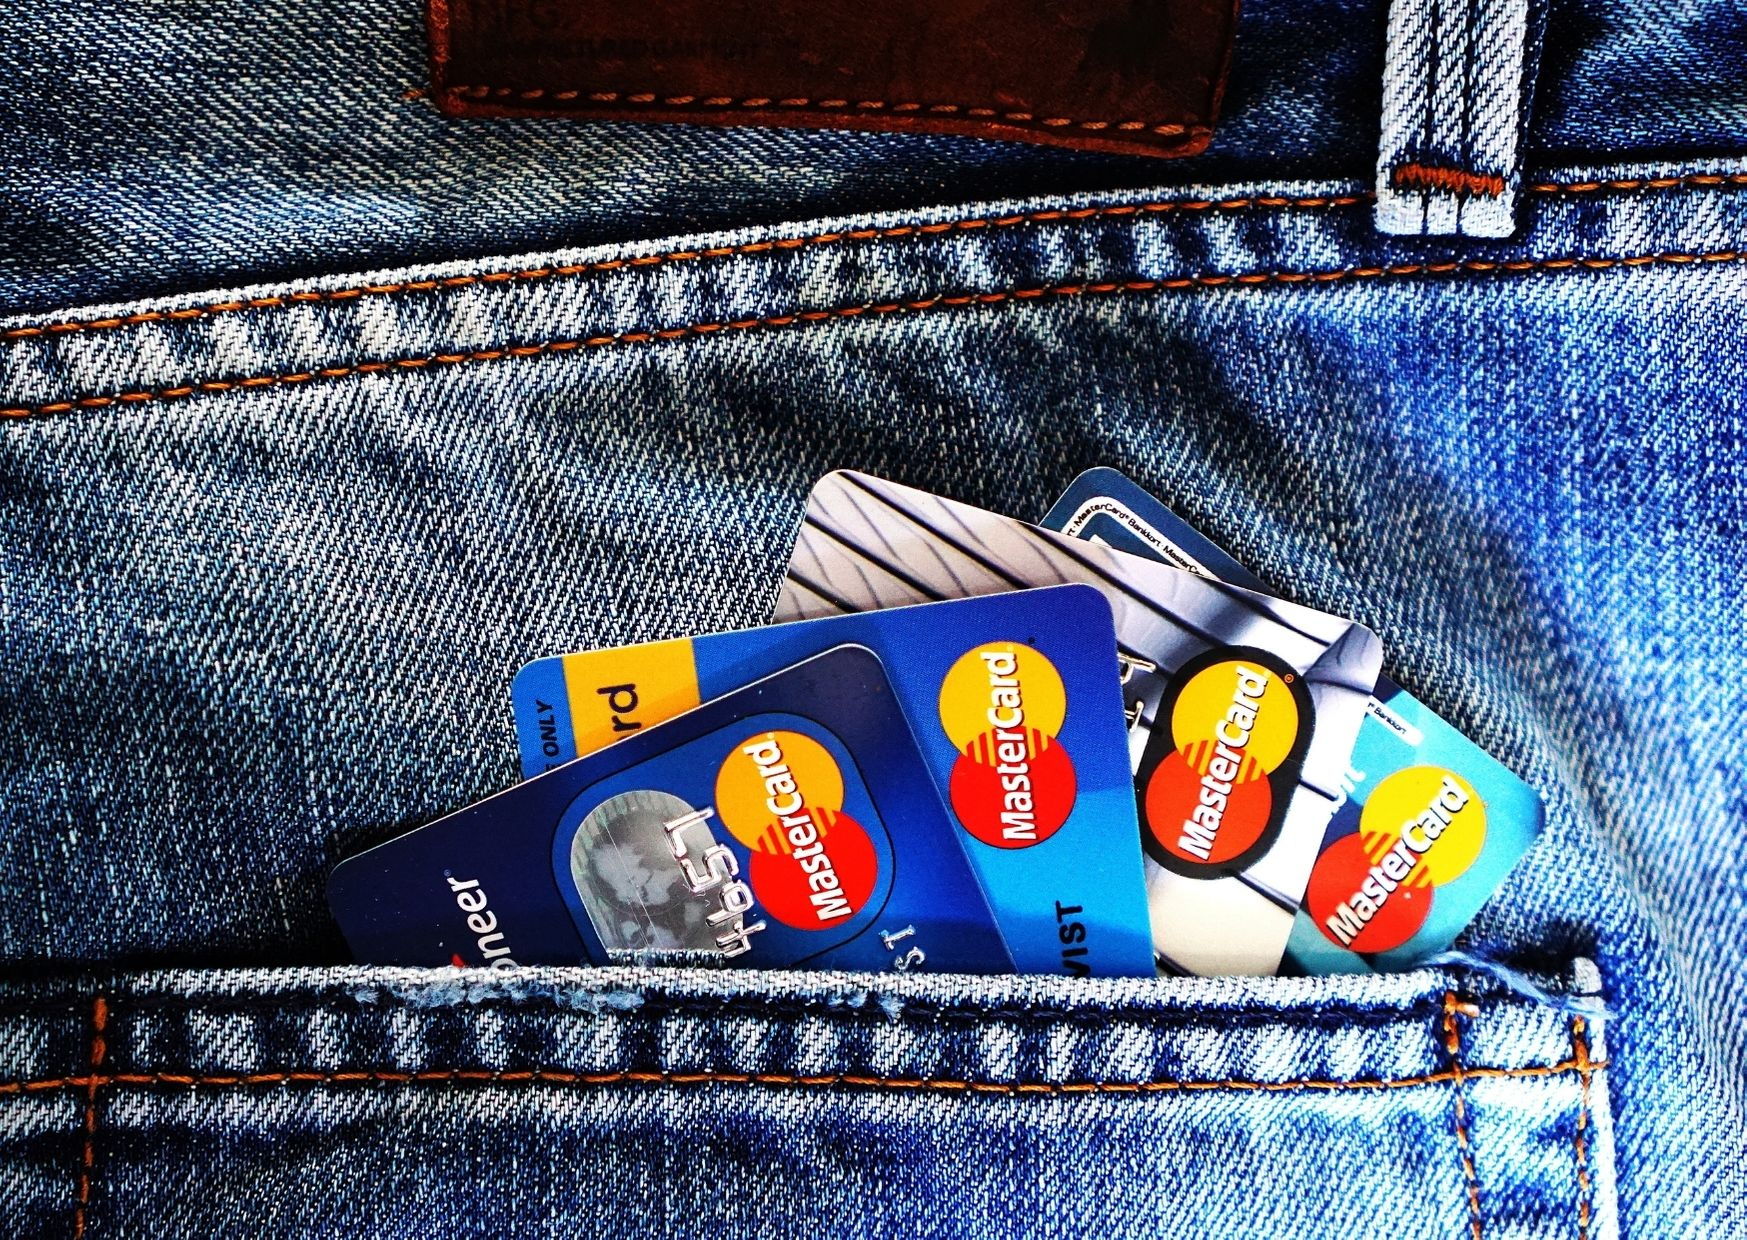 5 Most important tips to protect credit card